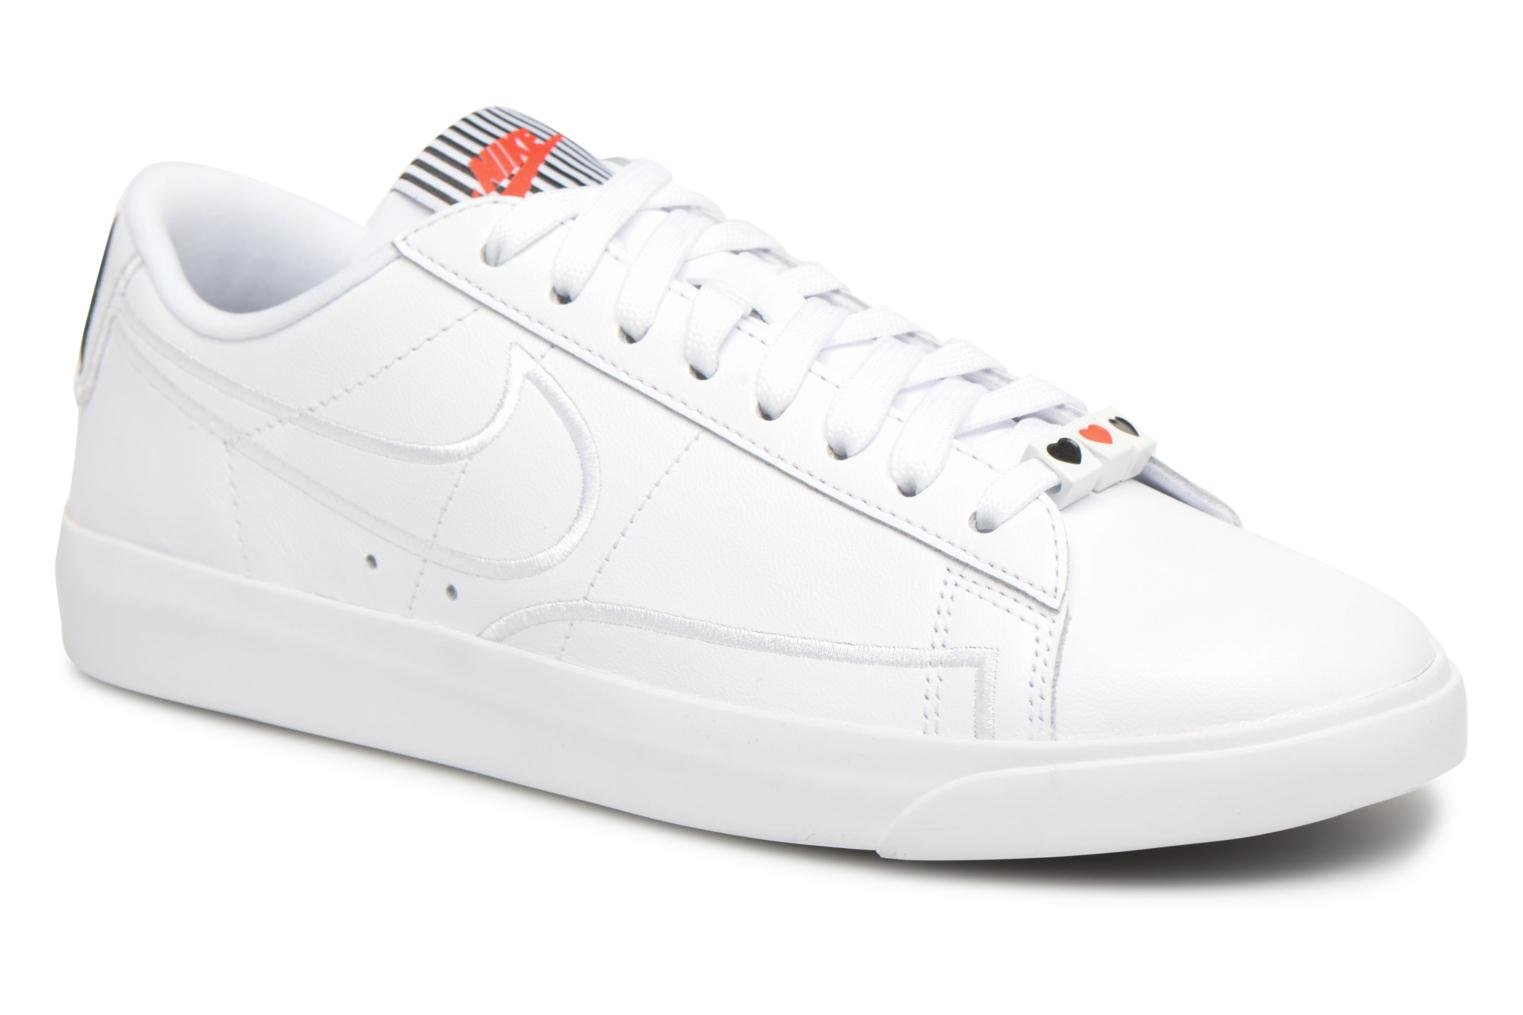 W Blazer Low Se Lx White/White-Black-Speed Red